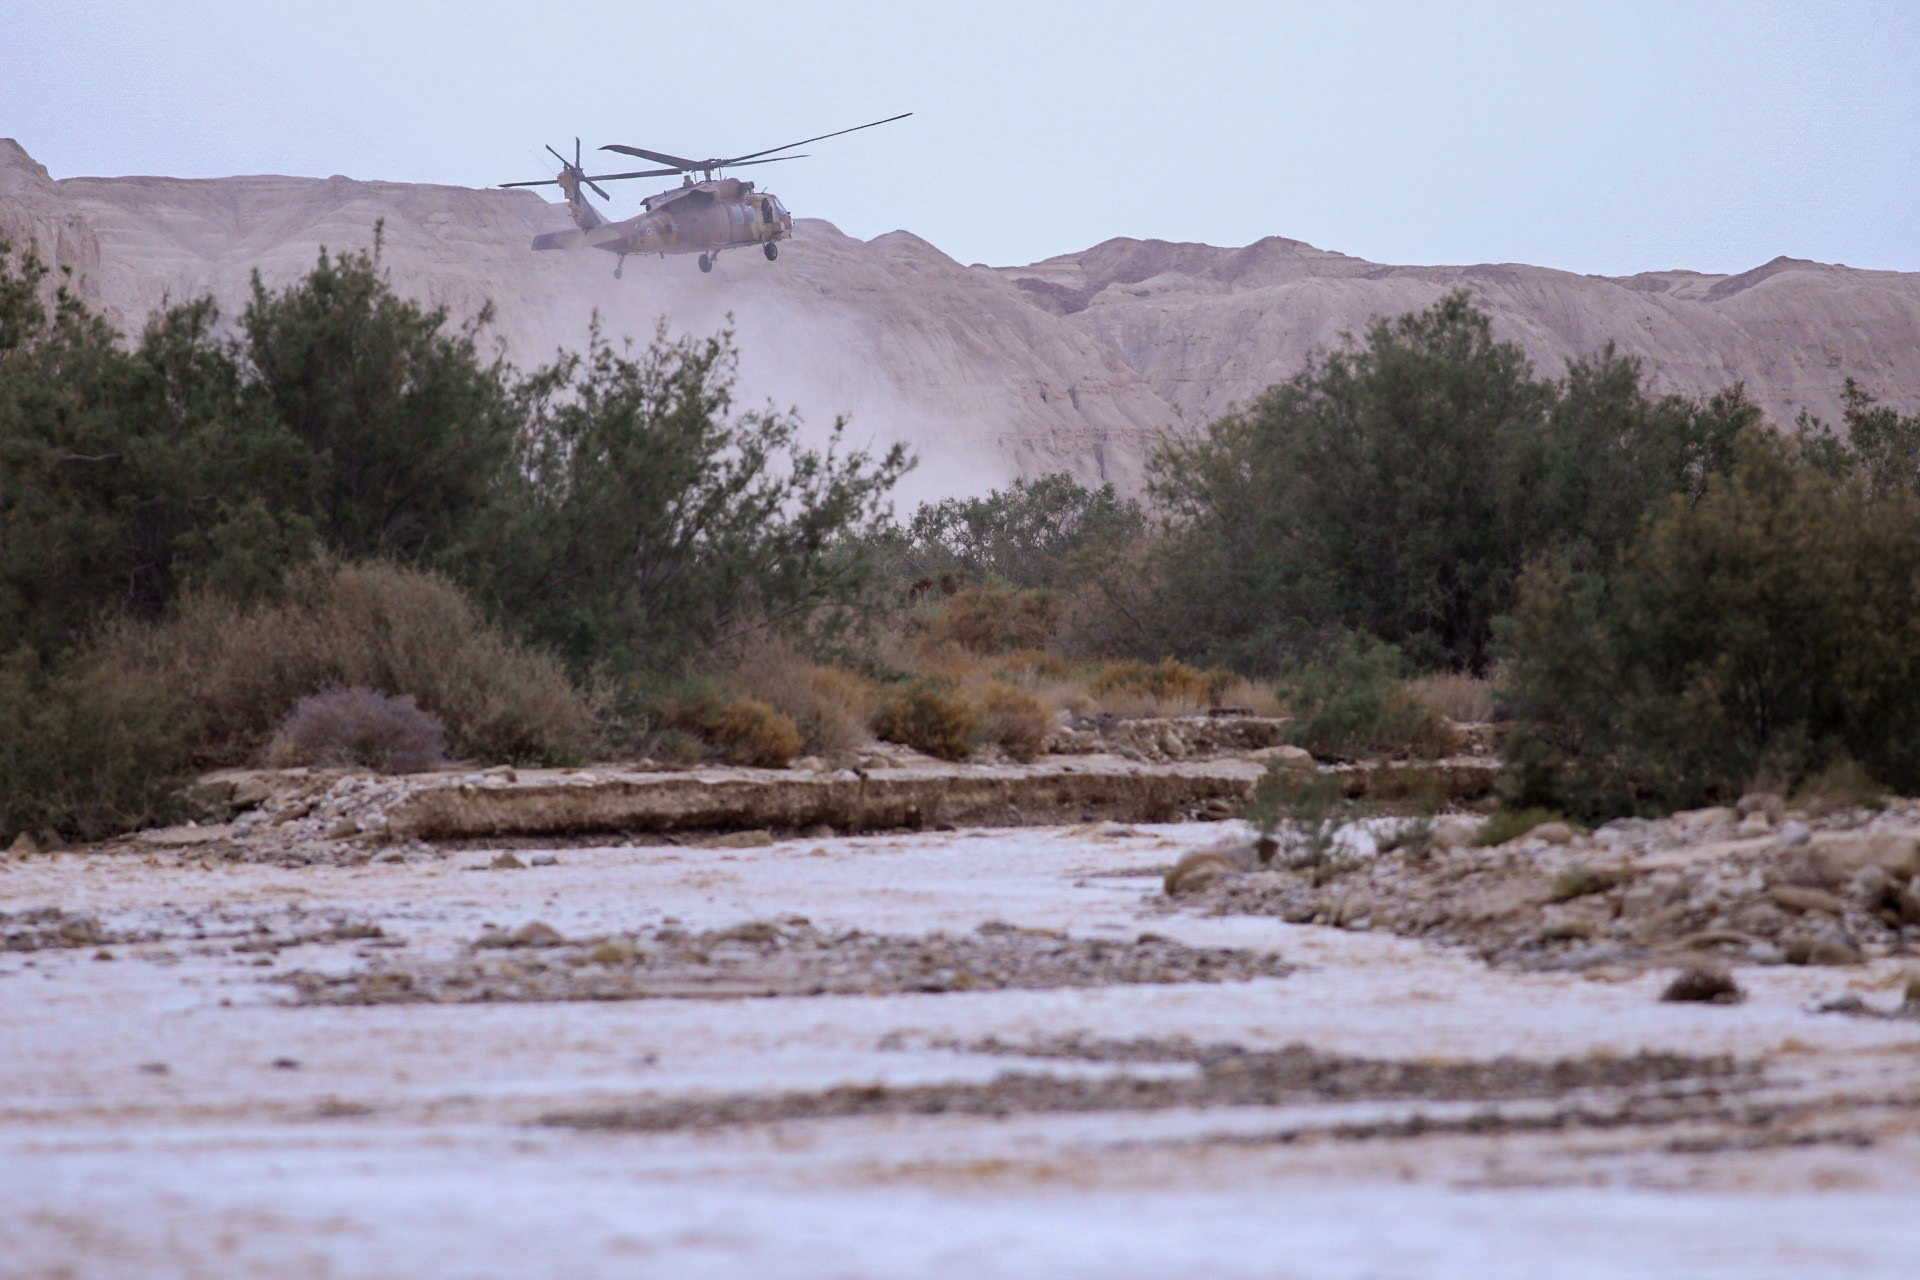 Israeli Teens Killed, 1 Missing After Getting Caught In Flash Flood